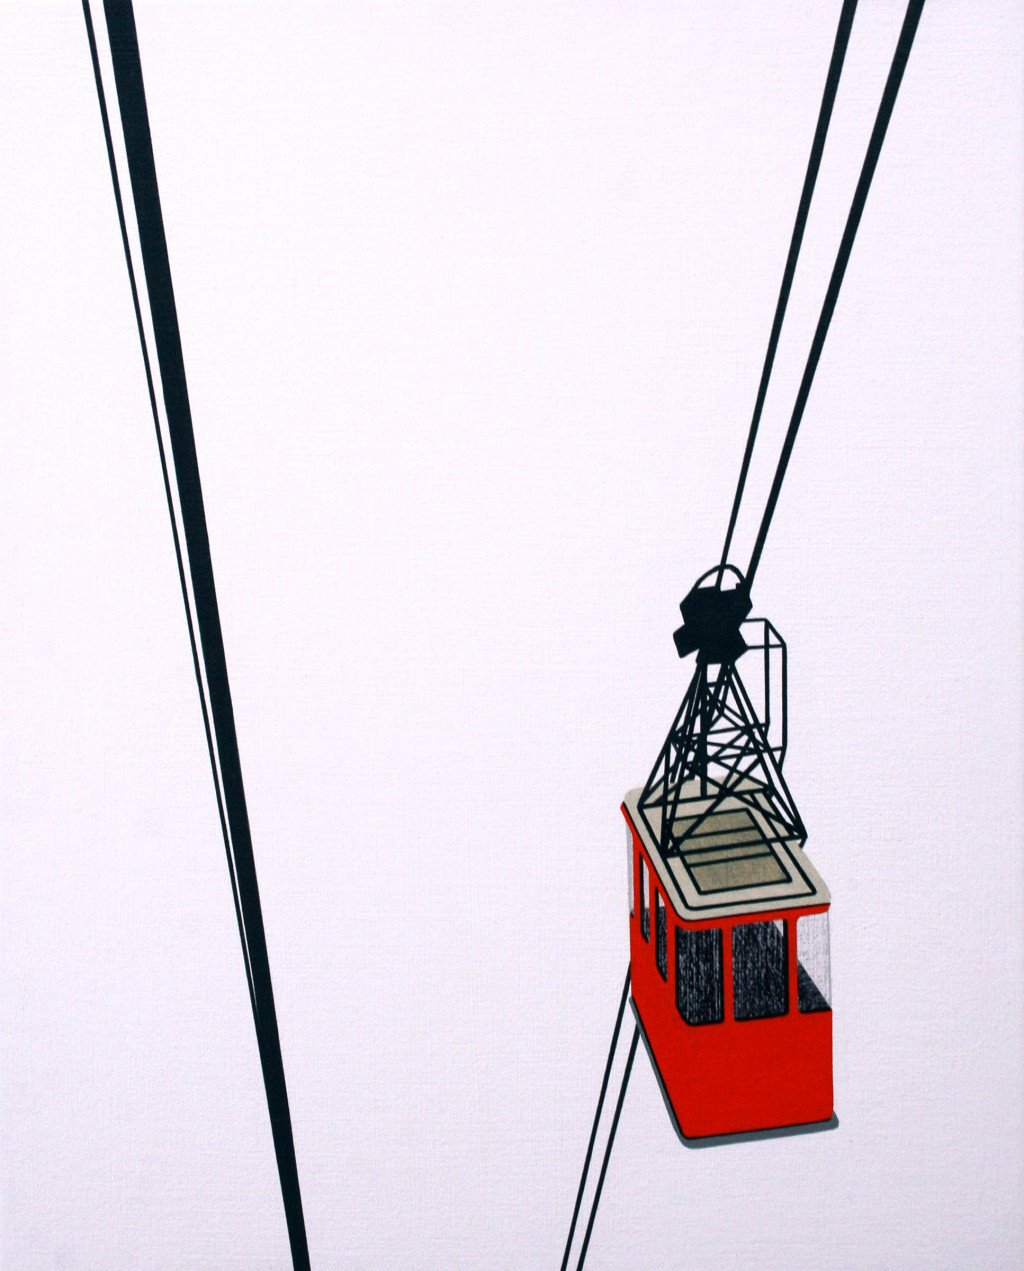 William Steiger, Aerial Tram Red